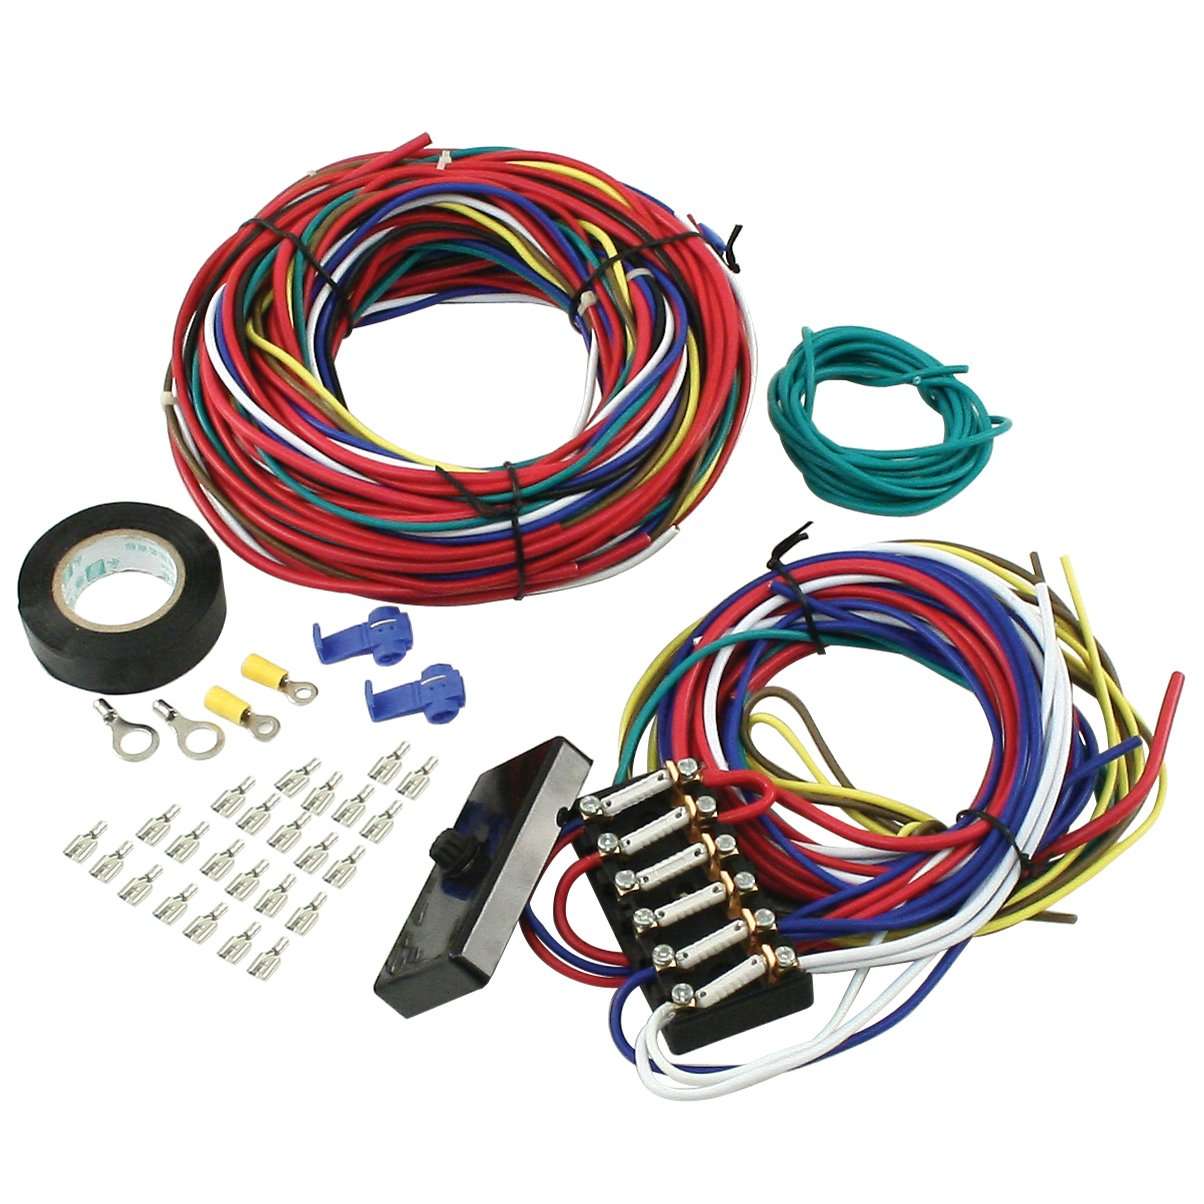 712Fyt3MSiL._SL1204_ amazon com empi 00 9466 0 wire loom kit, vw buggy, sand rail dune buggy wiring diagram at webbmarketing.co